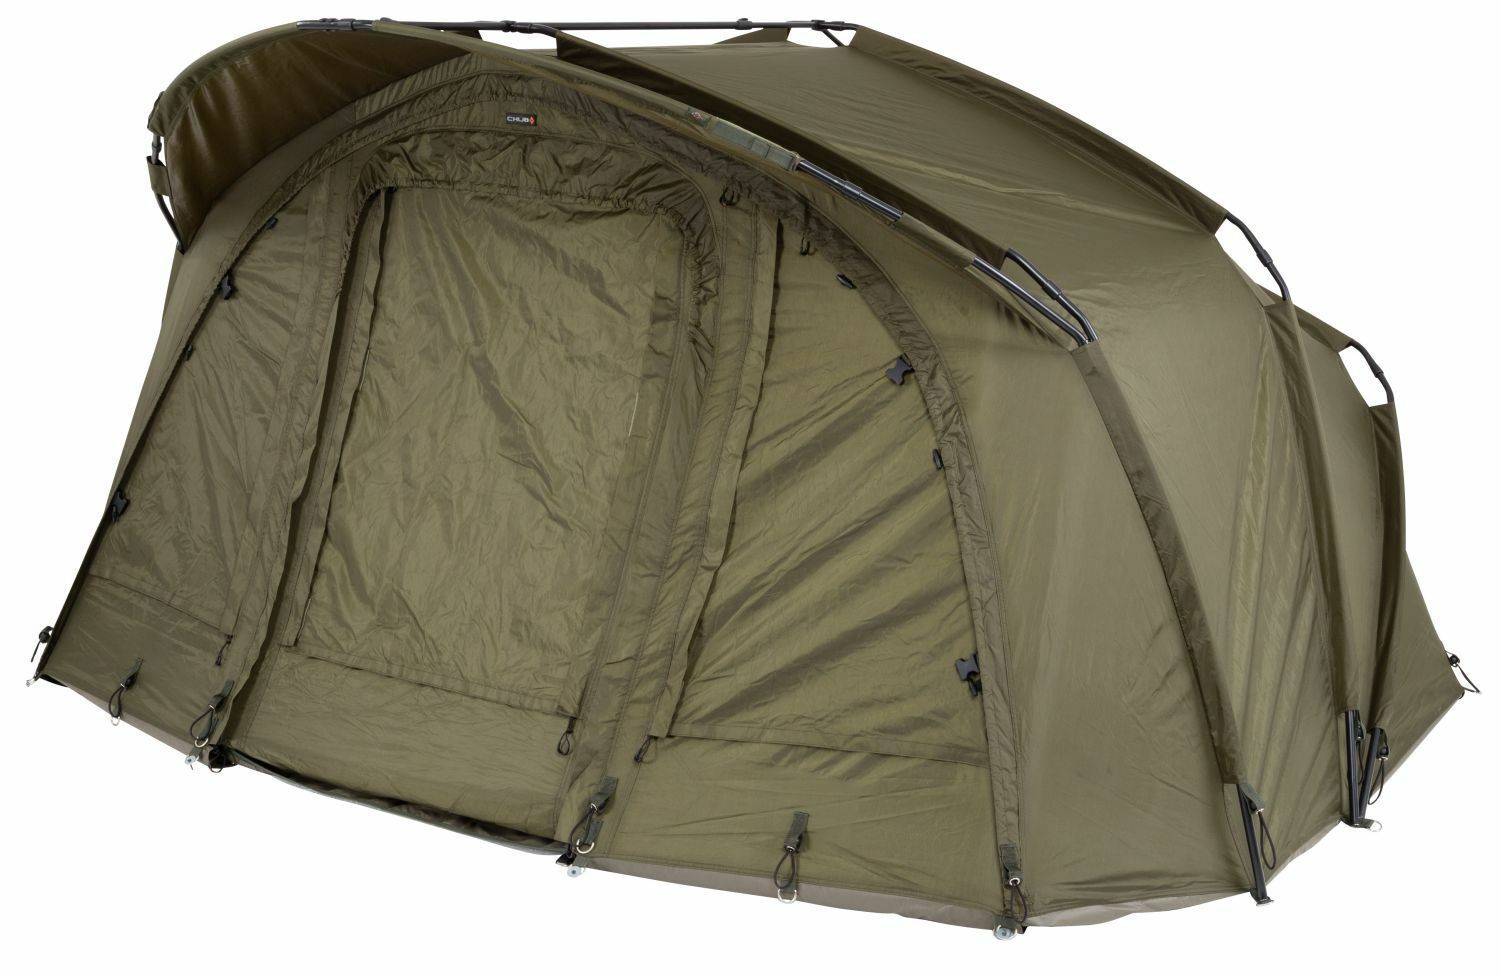 Chub cyfish 1 ON 1-homme tente tente tente avec Winterskin paréo complètement angelzelt Camping d401f4